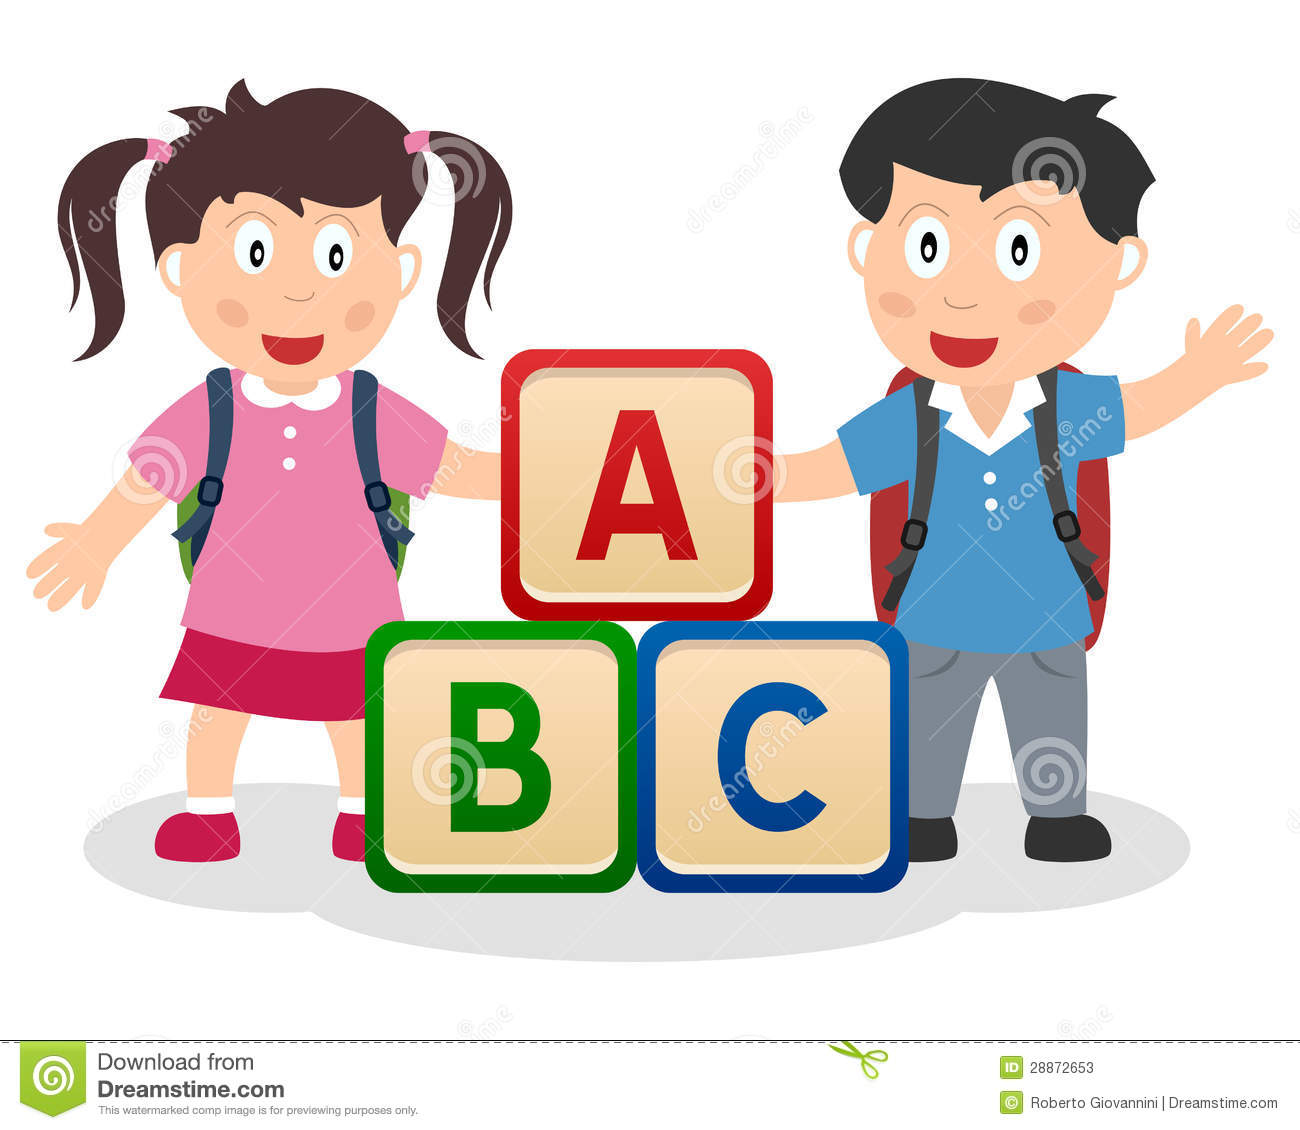 Abc clipart early childhood education. Kids learning image group